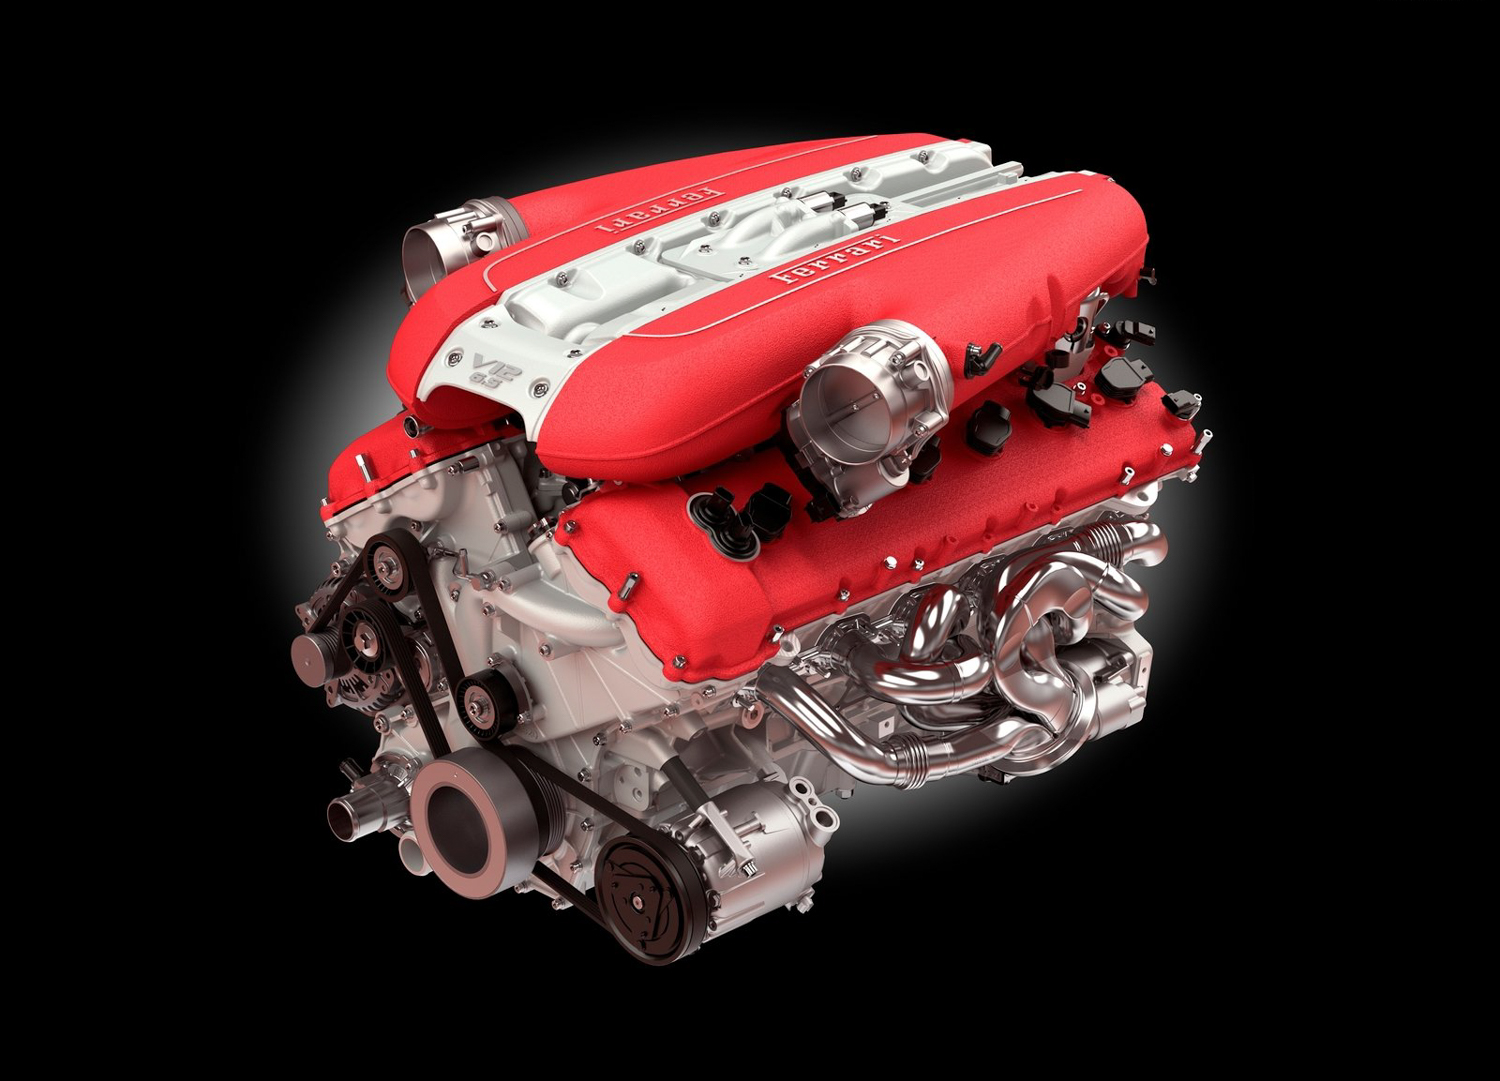 2018 Ferrari 812 Superfast engine v12 far